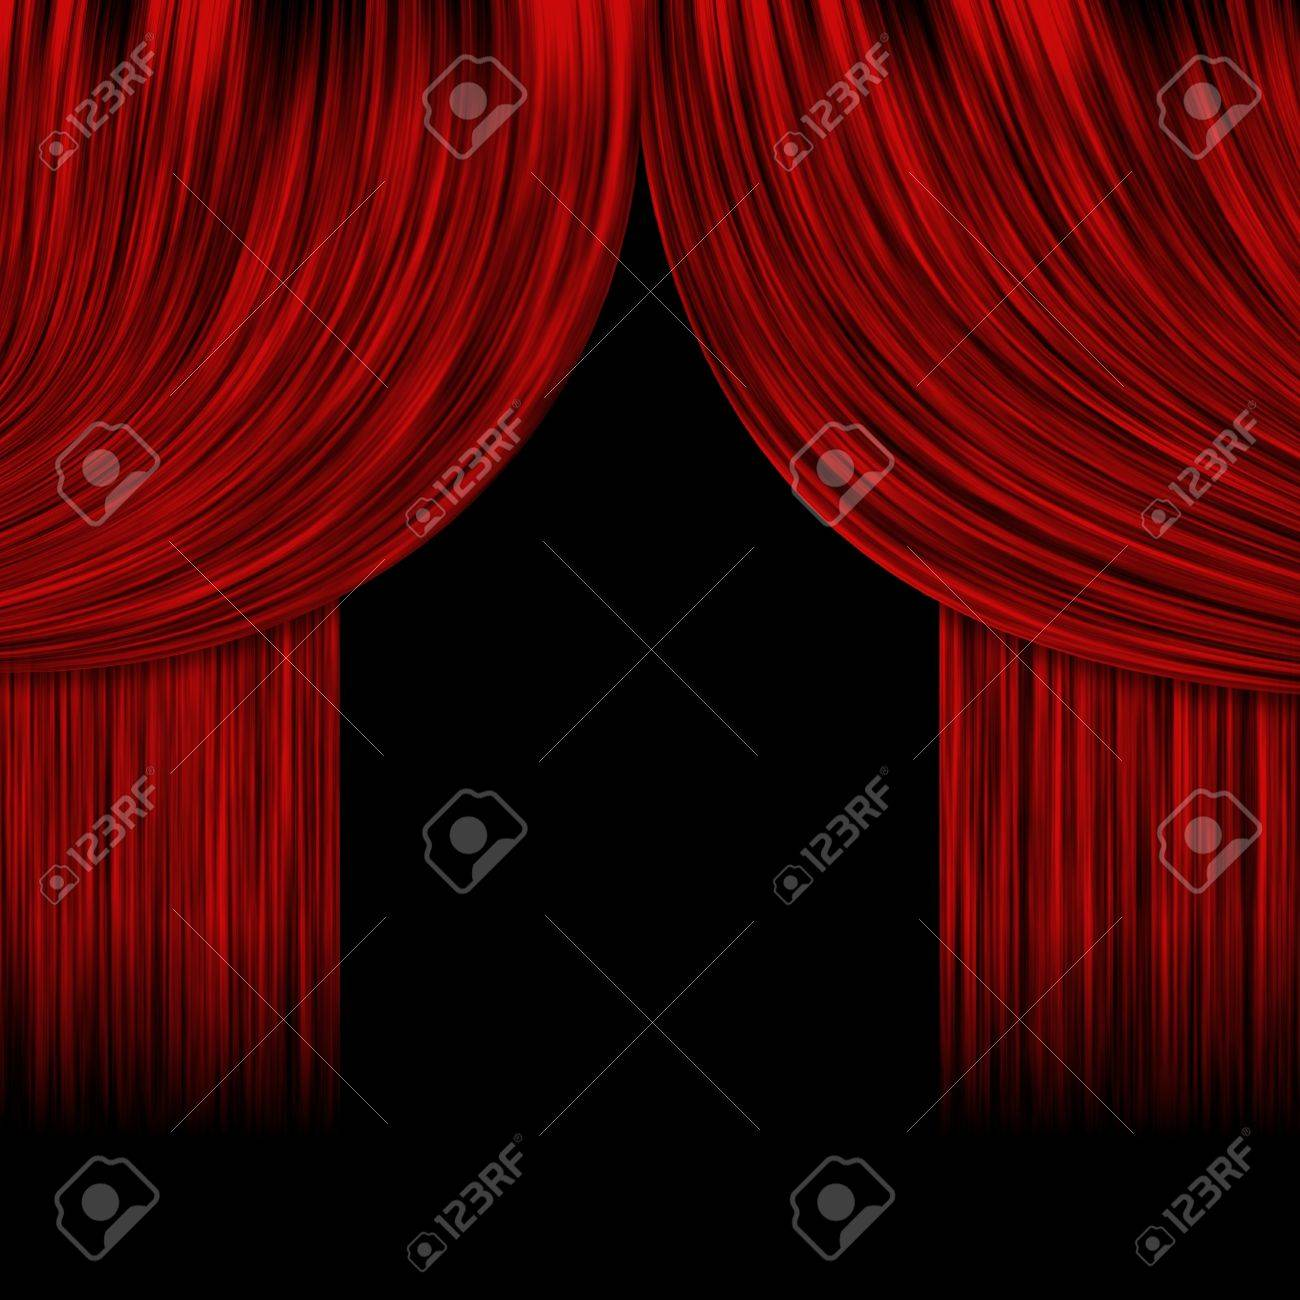 Real open stage curtains - Real Open Stage Curtains Illustration Illustration Of Open Theater Drapes Or Stage Curtains With A